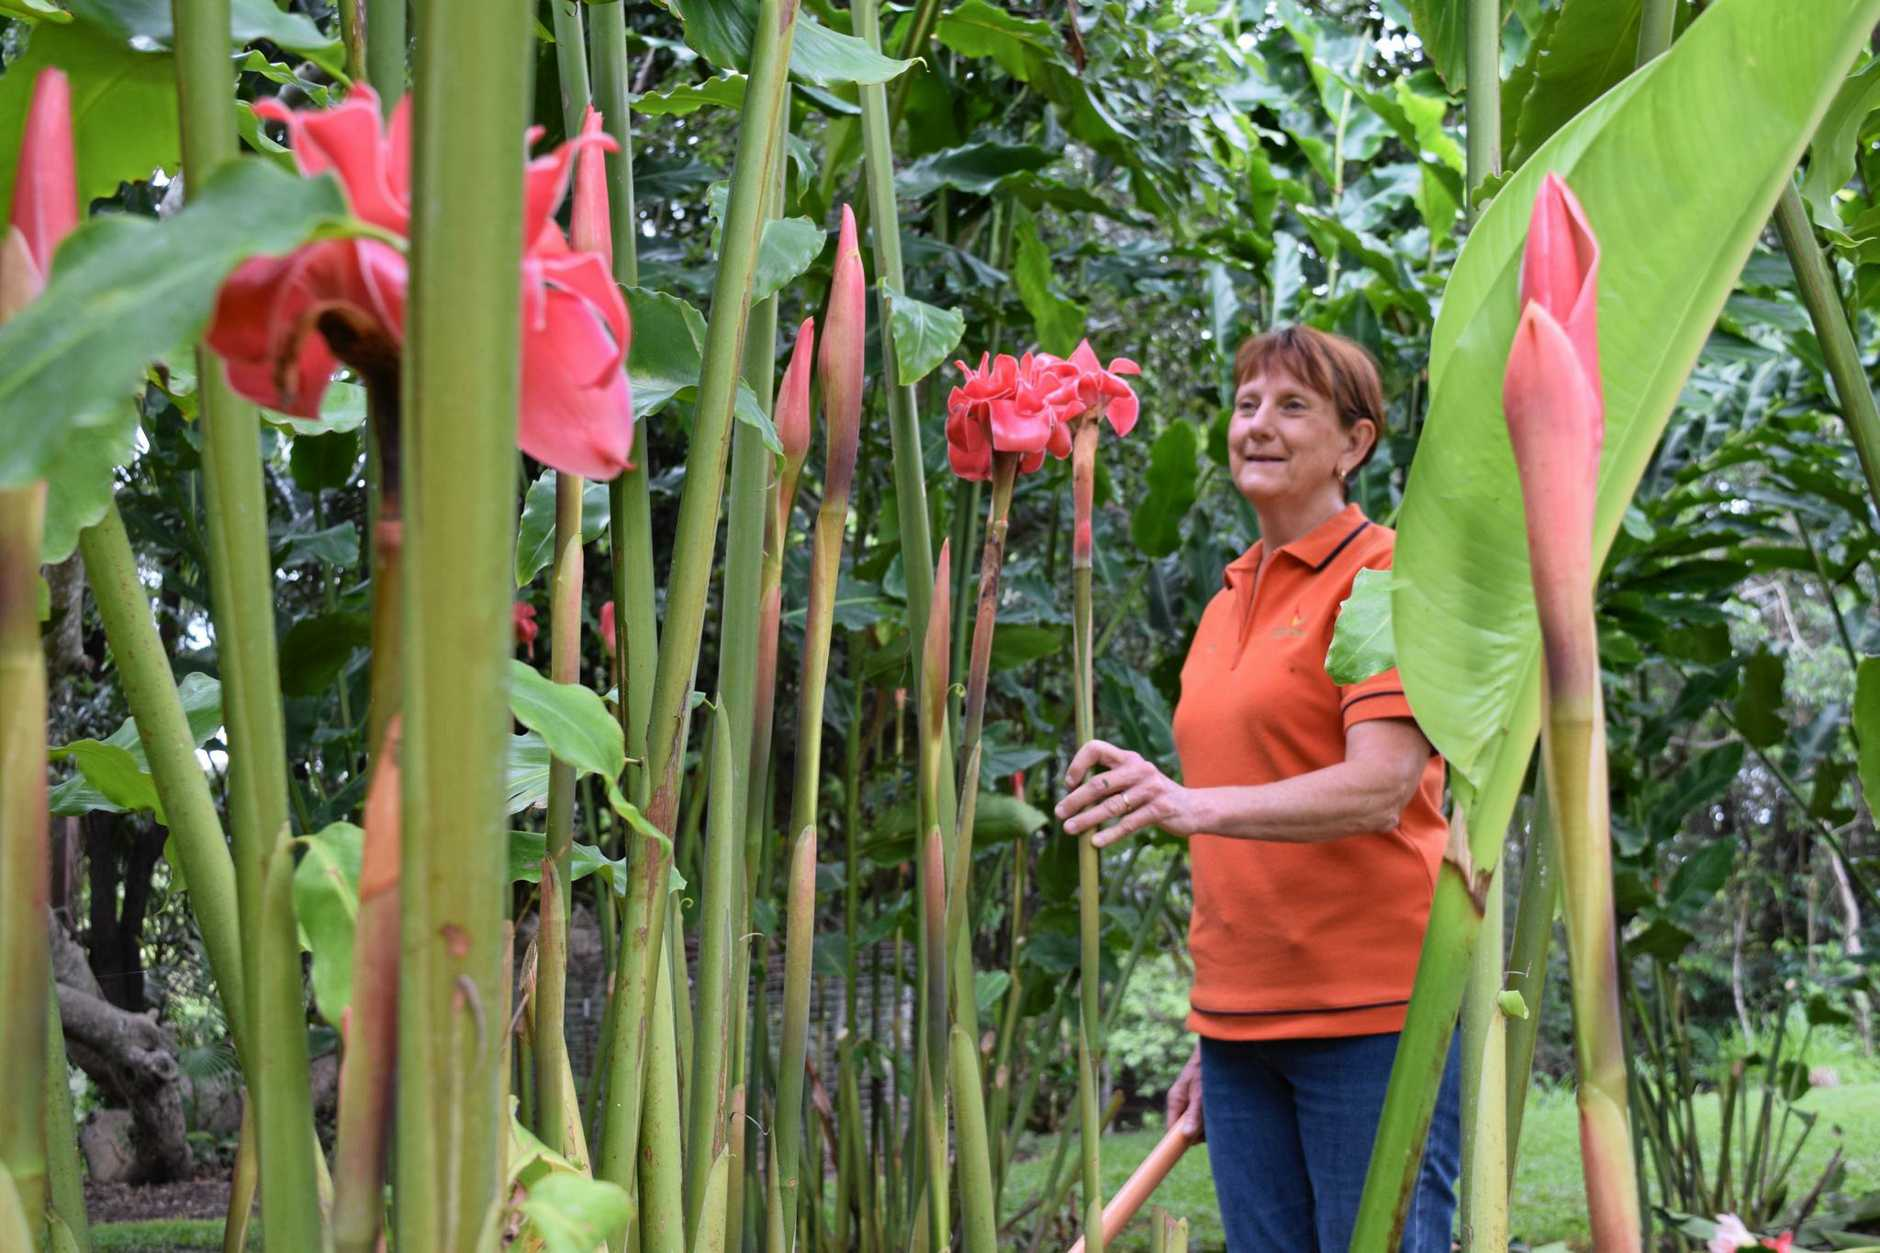 Lyn Palmer had wanted to be a commercial flower producer since visiting other farms near Mission Beach.